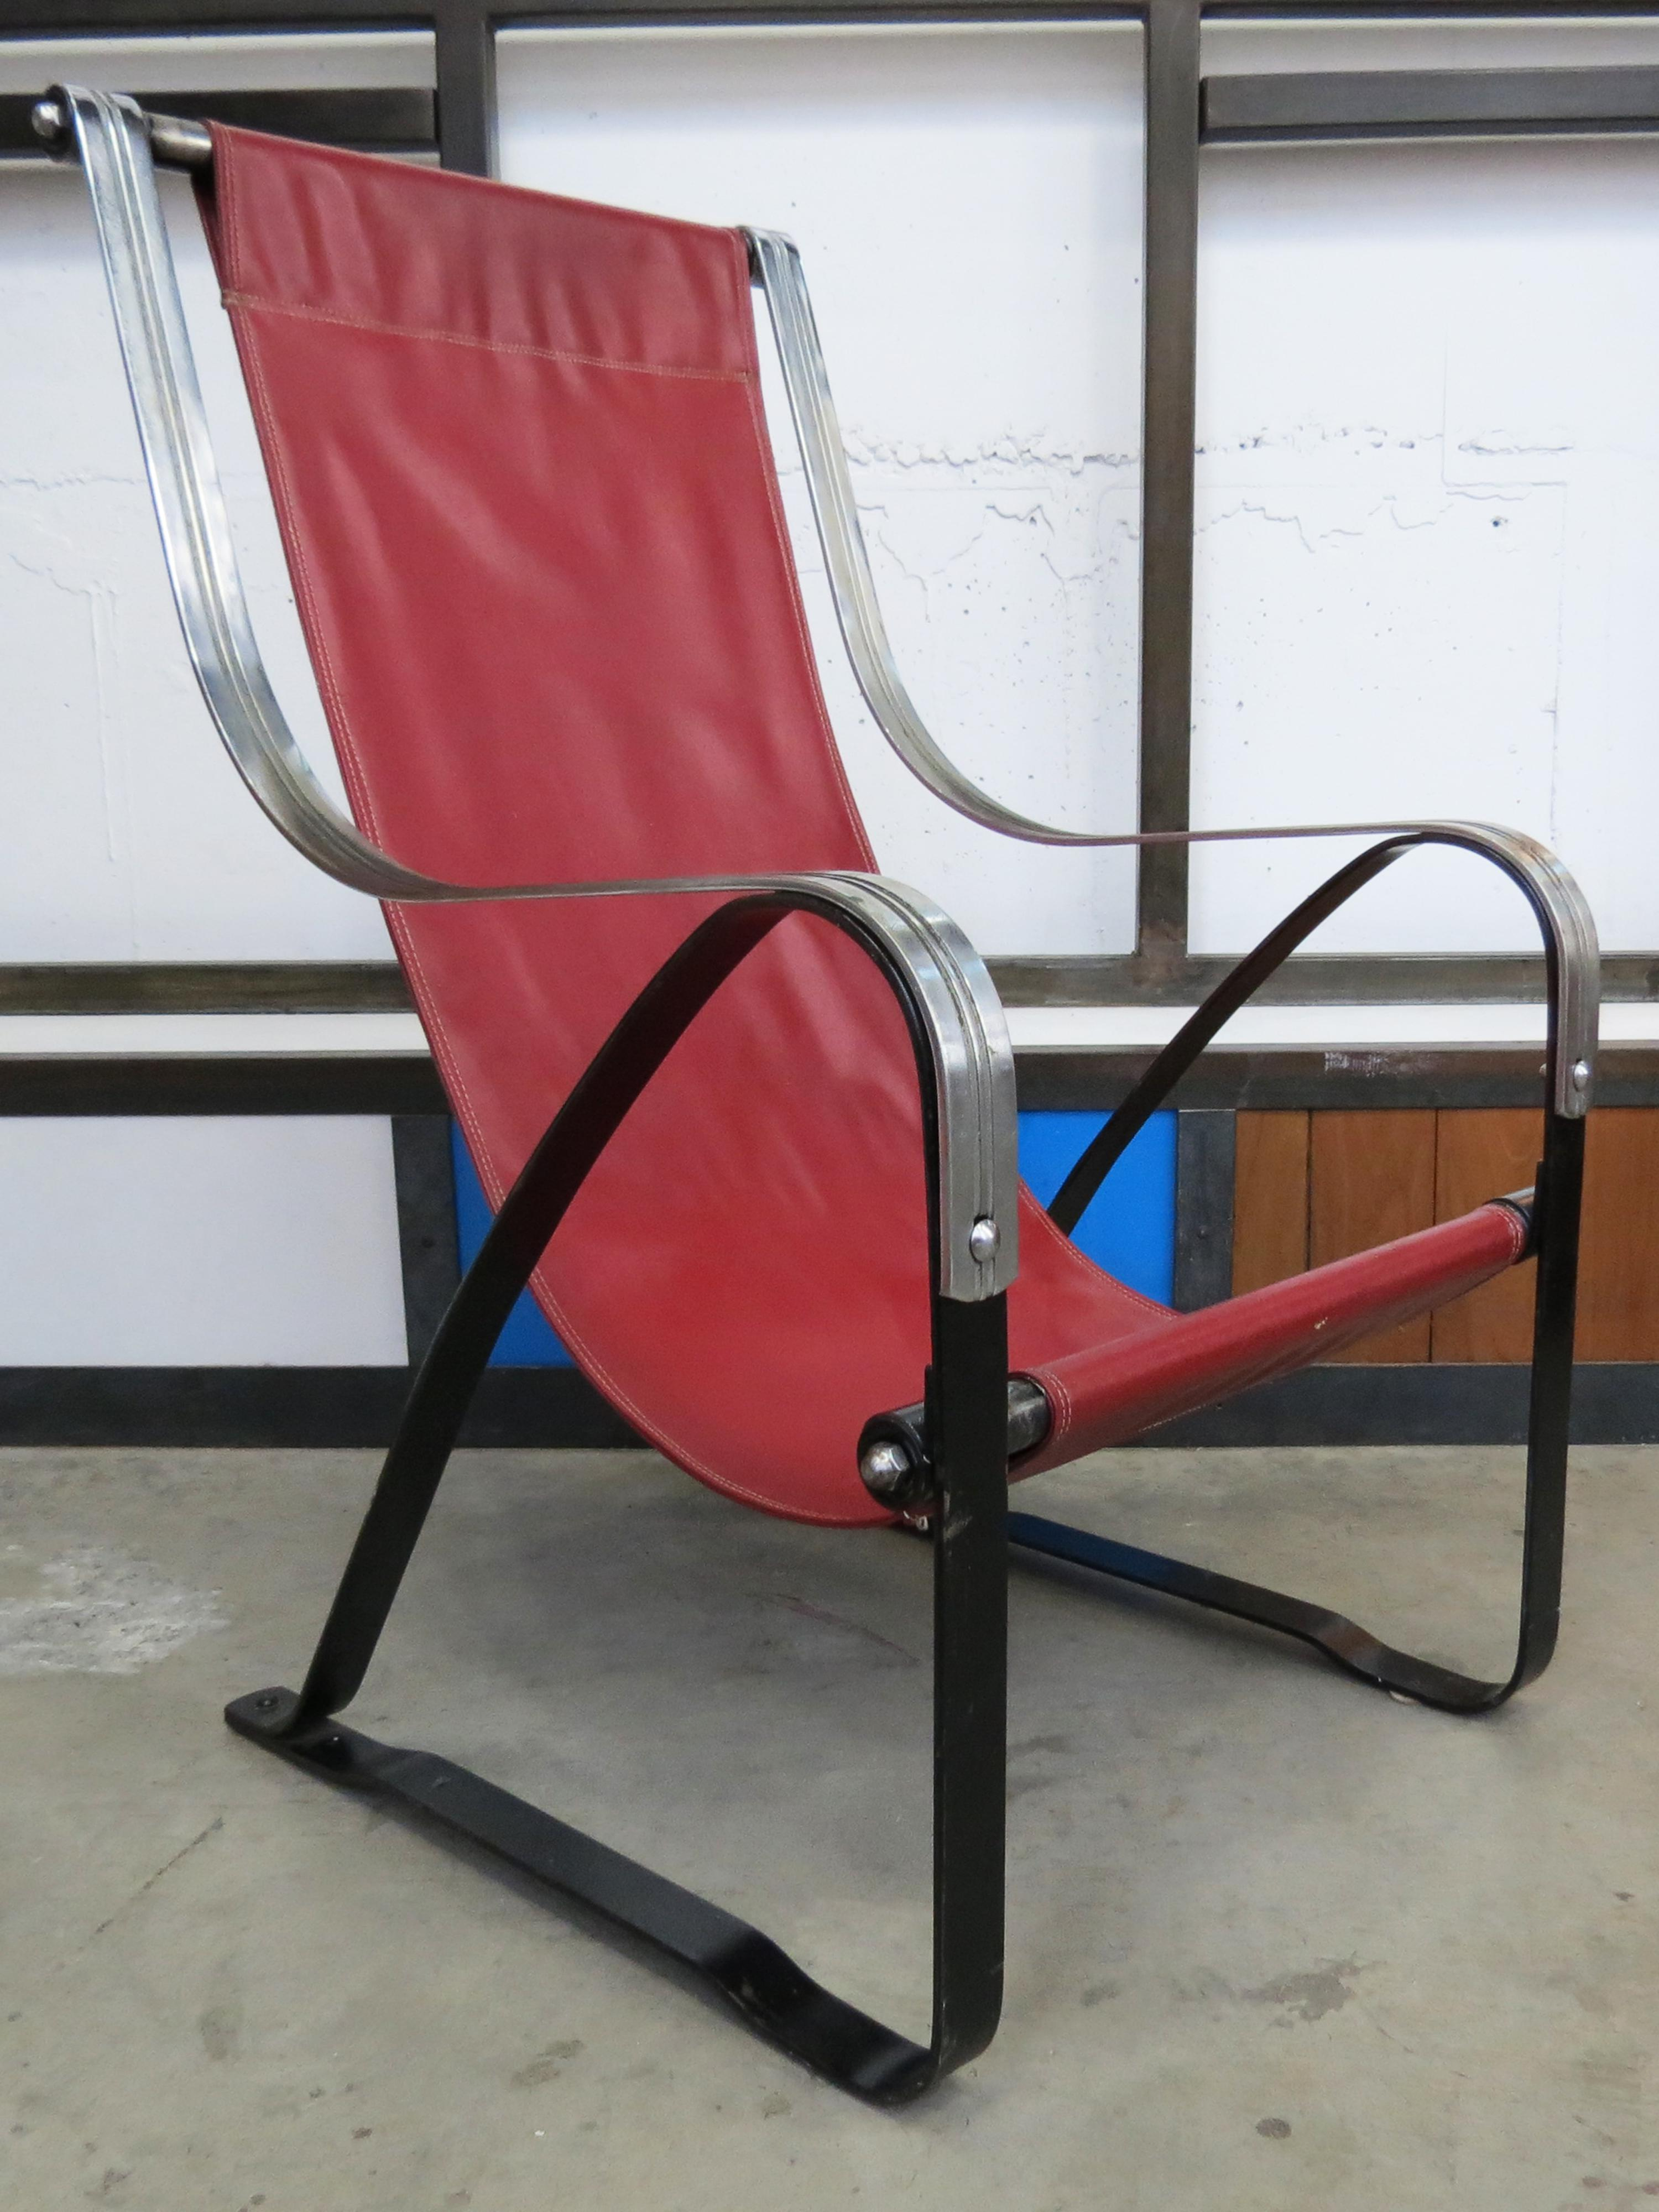 Beau McKay Furniture Corp. McKay Furniture Corp. Vintage Art Deco Lounge Chairs    A Pair